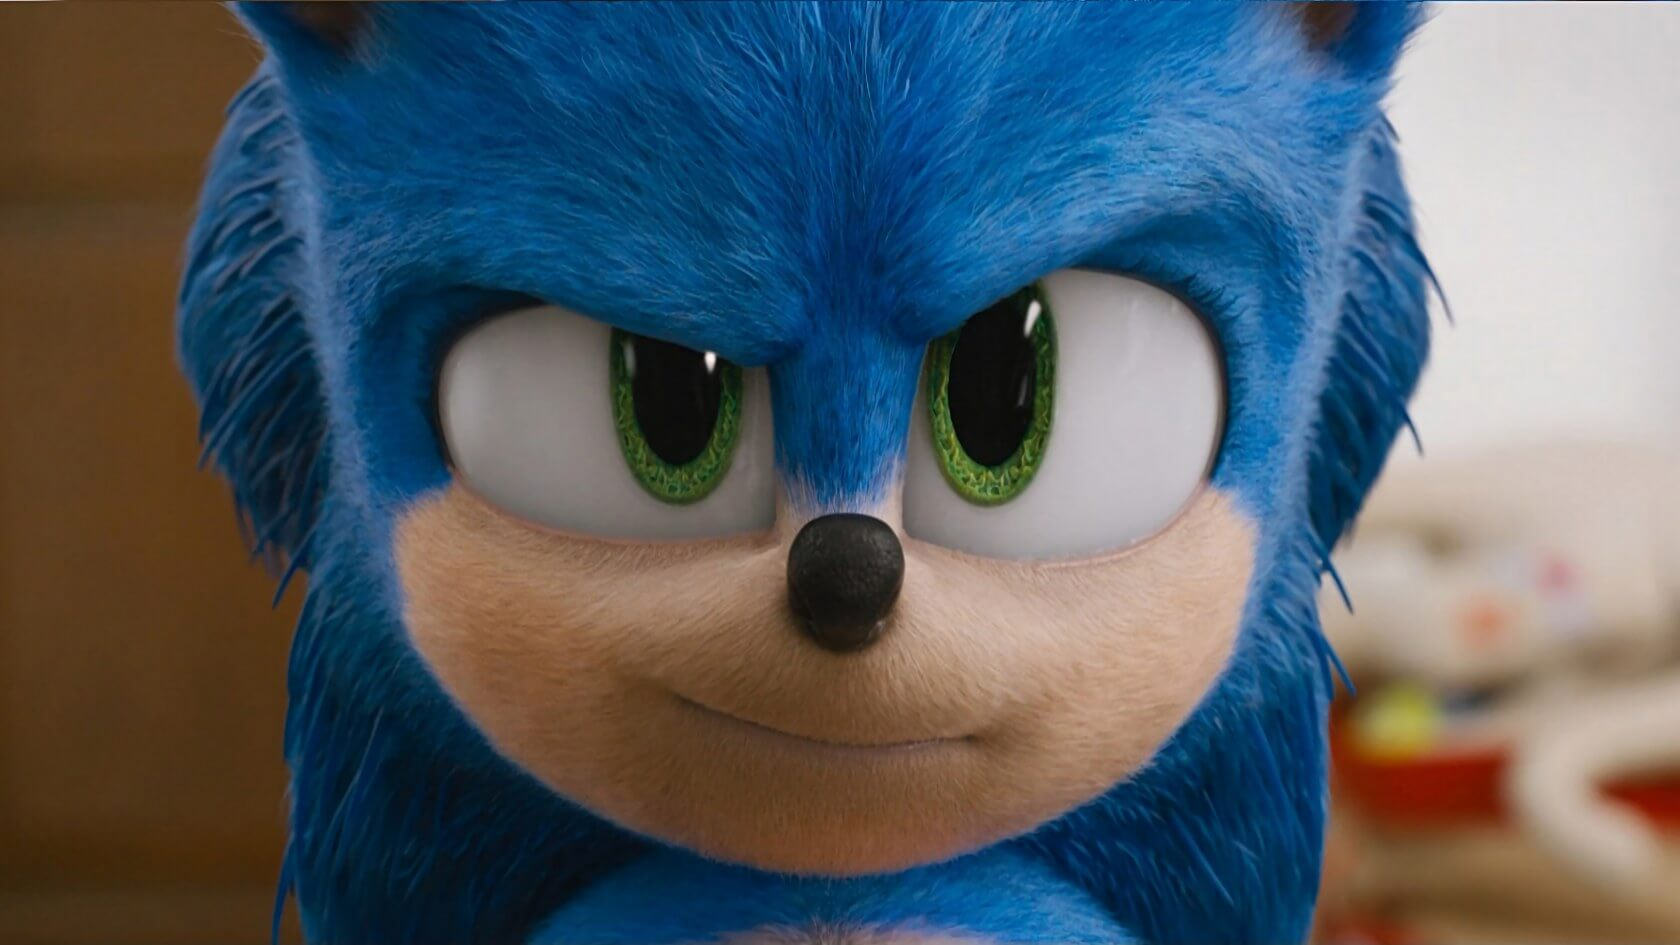 Paramount's live-action Sonic the Hedgehog film is getting a sequel